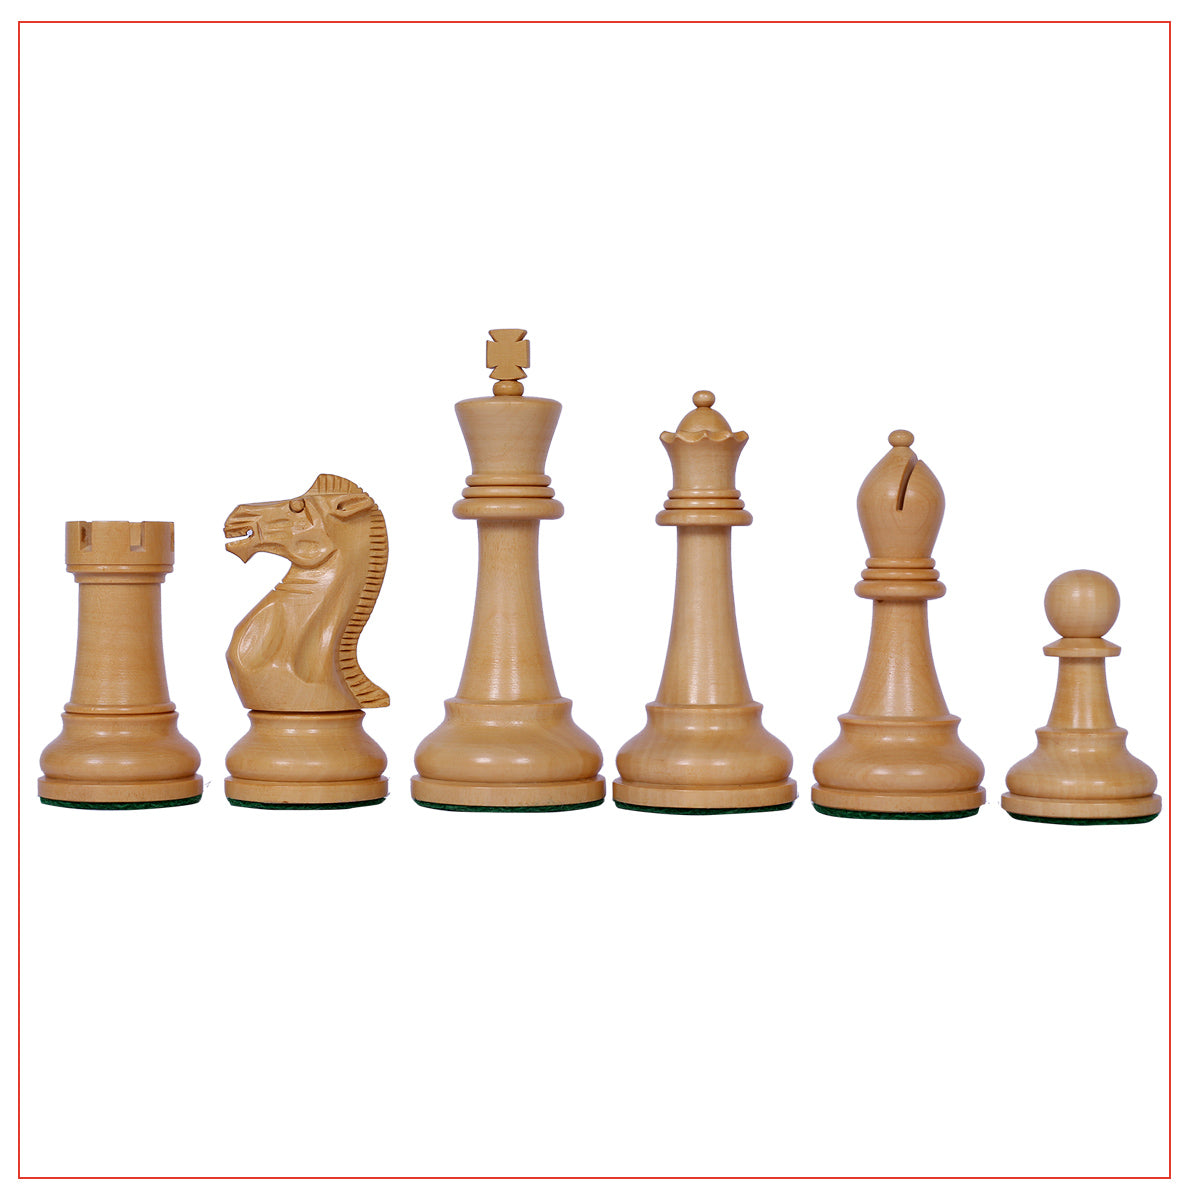 "Verona Series 4"" Staunton Chess Pieces - Ebonised Wood"